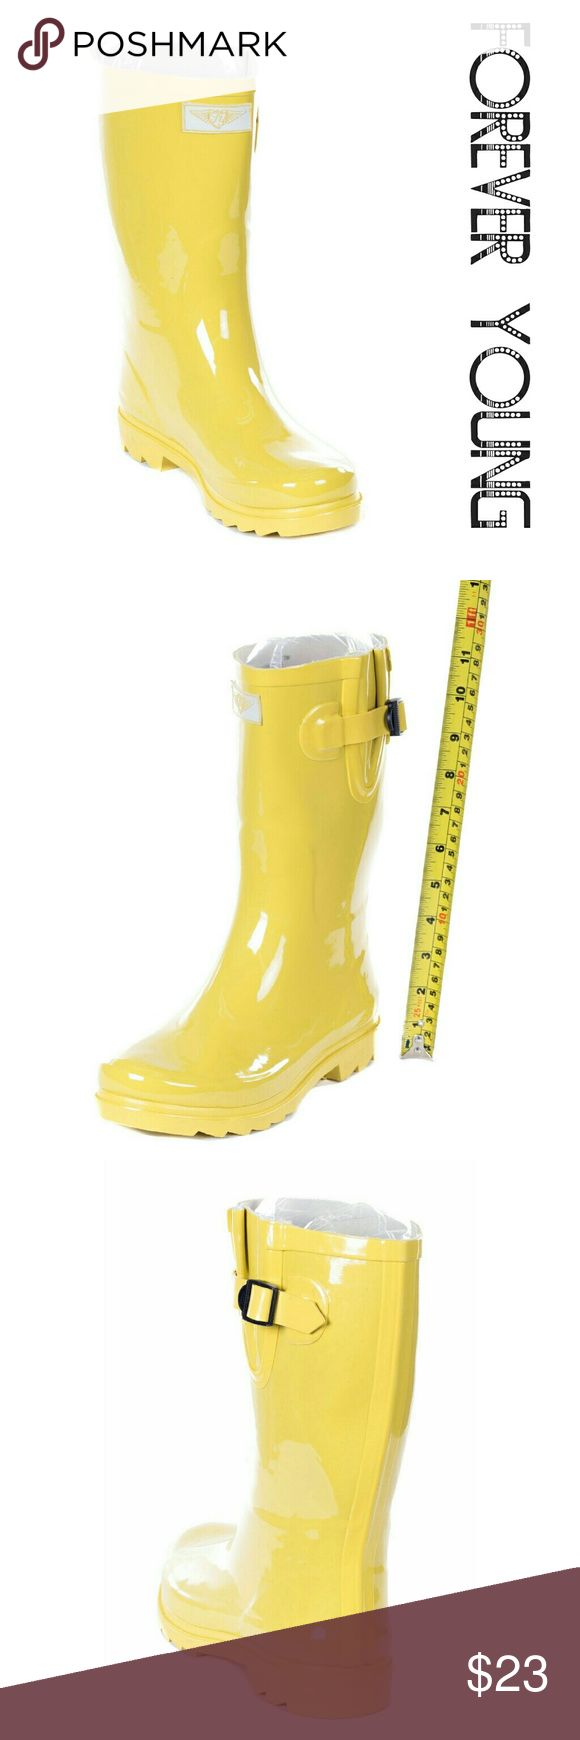 """Women Mid Calf Rainboots,  #1602, Yellow Fixed price! Brand new yellow jacket woman rainboots by Forever Young. 100% rubber rain boots!!! Cotton lining, removable sole. Approx. 11"""" tall, rainboot leg circumference approx. 15"""". Rain boot runs half a size larger than your regular shoes. They are taller than galoshes and protect your feet better while you garden or just walk in the fall or winter rain. Not made for wide calves. A true staple in ladies shoes fashion! Forever Young  Shoes Winter…"""